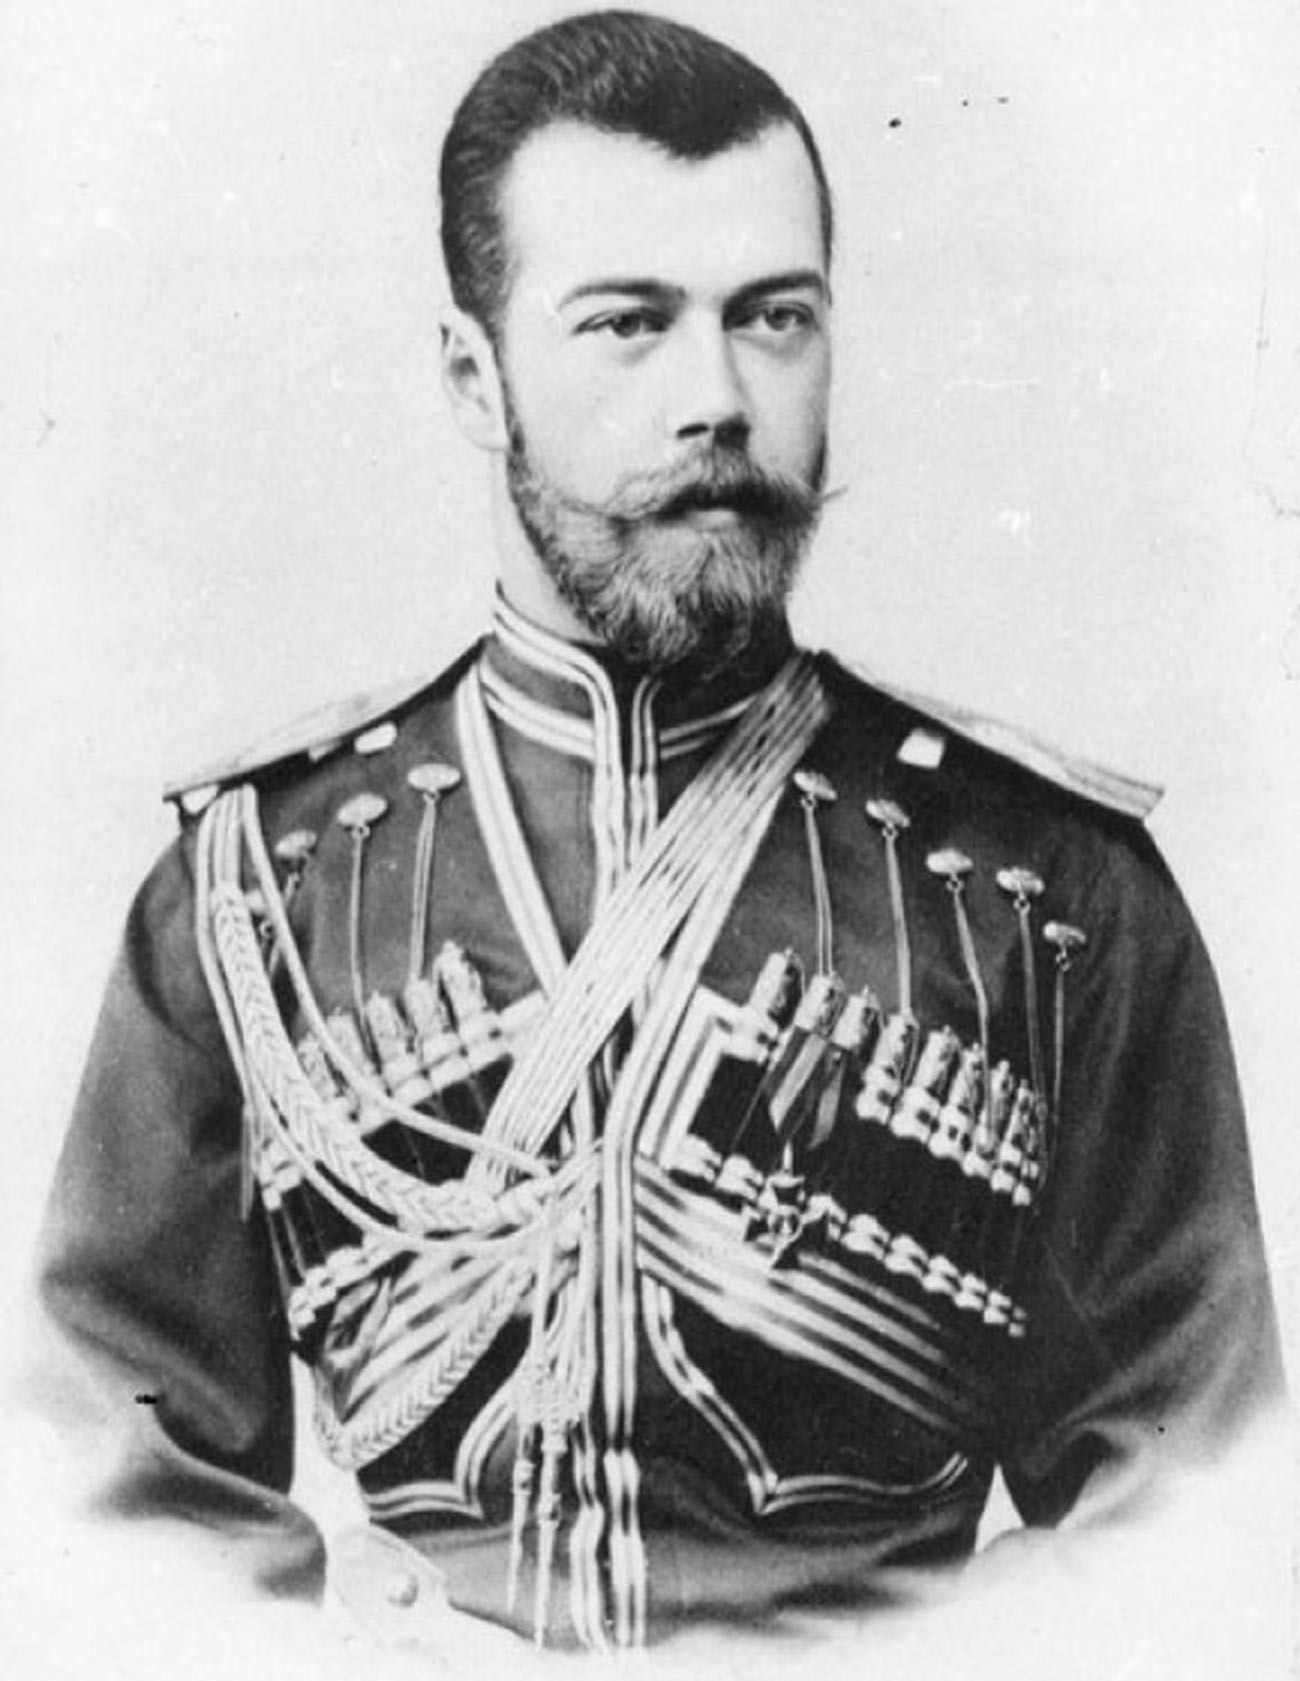 Nicholas II in the uniform of His Majesty's Life-Guards Hussar Regiment